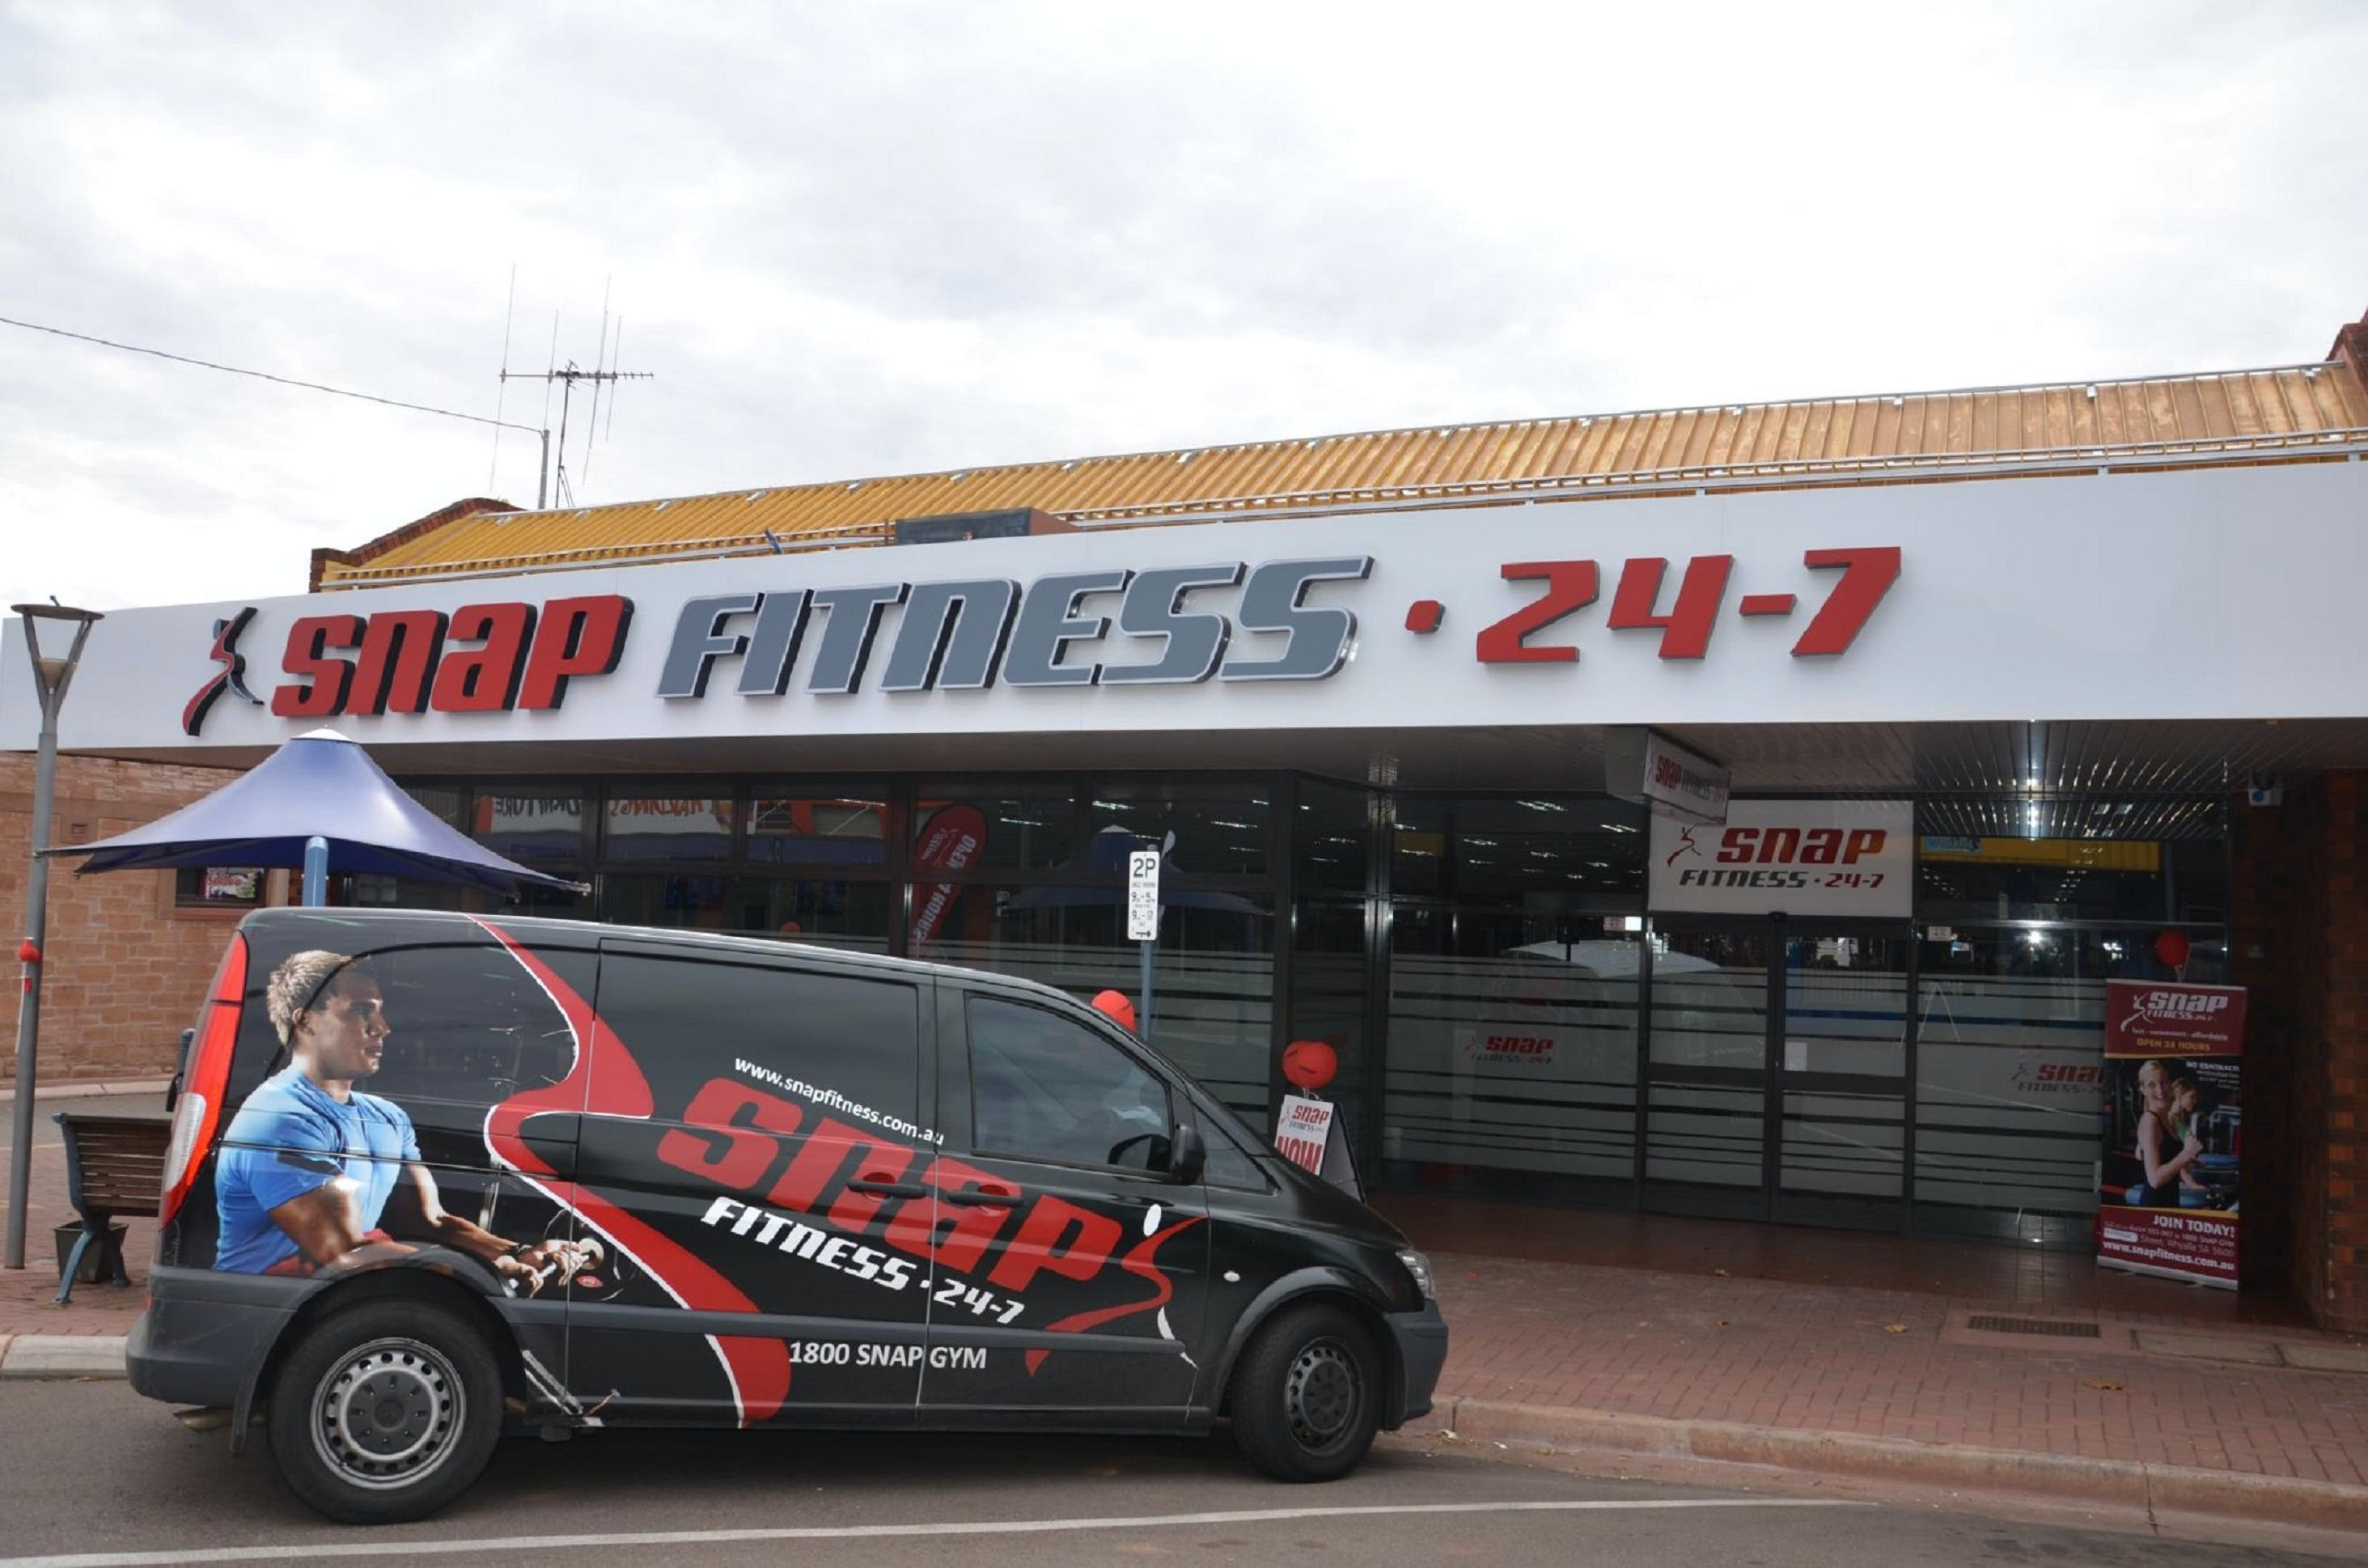 Snap Fitness Whyalla 24/7 gym - Accommodation Mermaid Beach